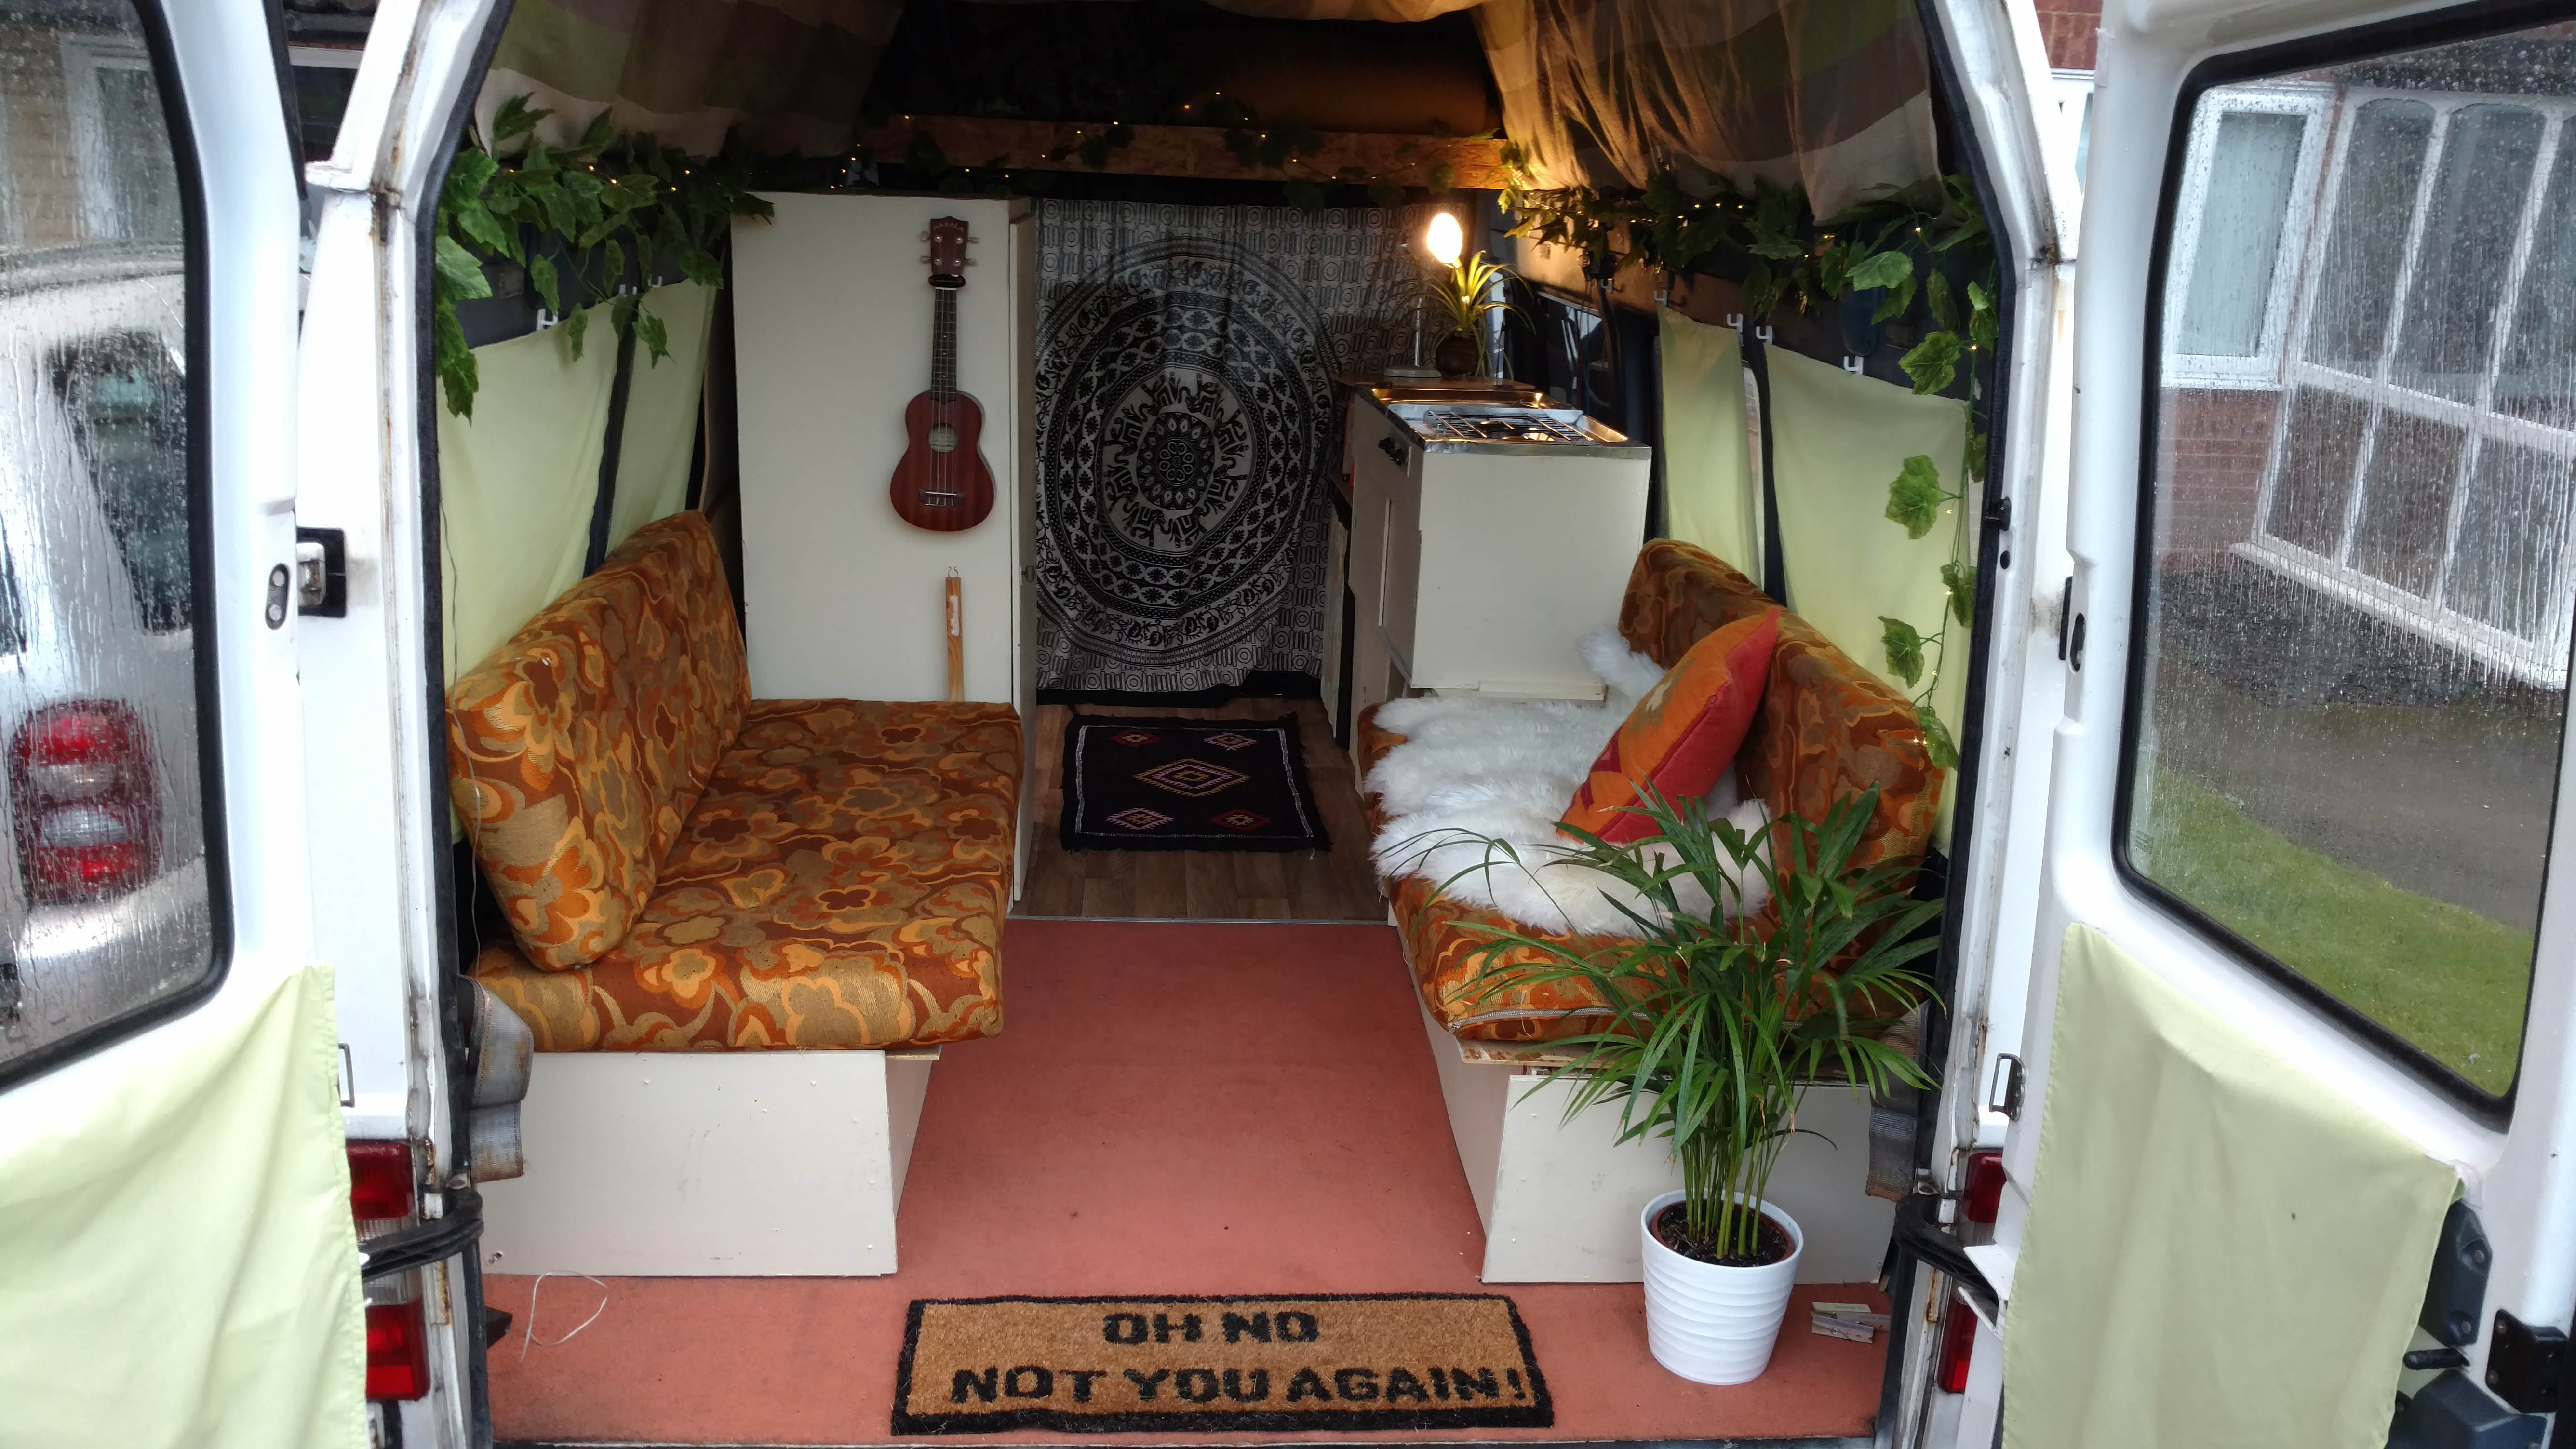 The pair can relax in their bus as they drive around Europe.